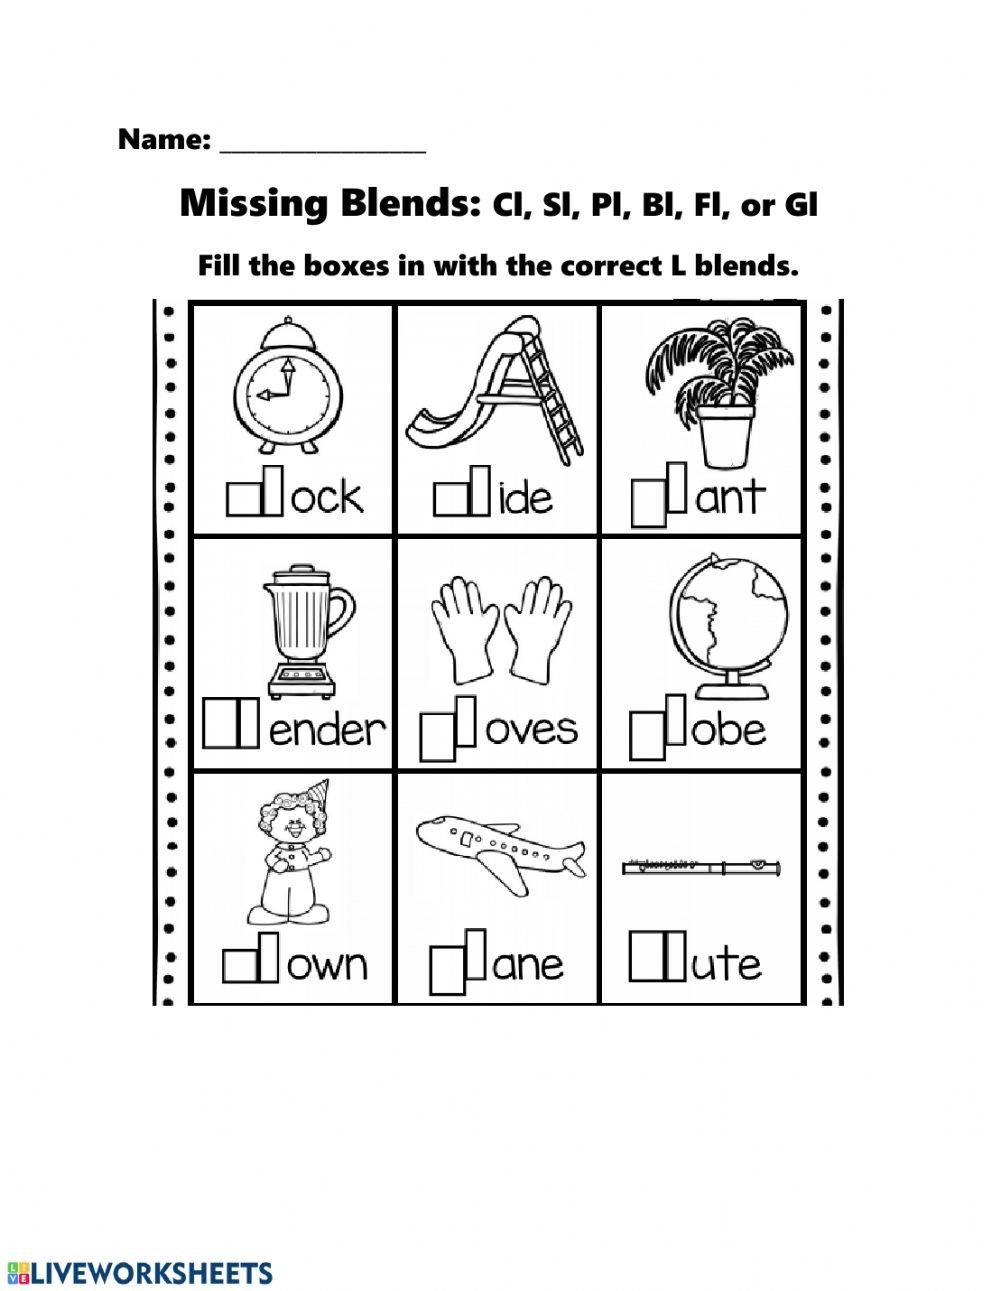 L Blends Worksheets for Kindergarten Missing L Blends Interactive Worksheet